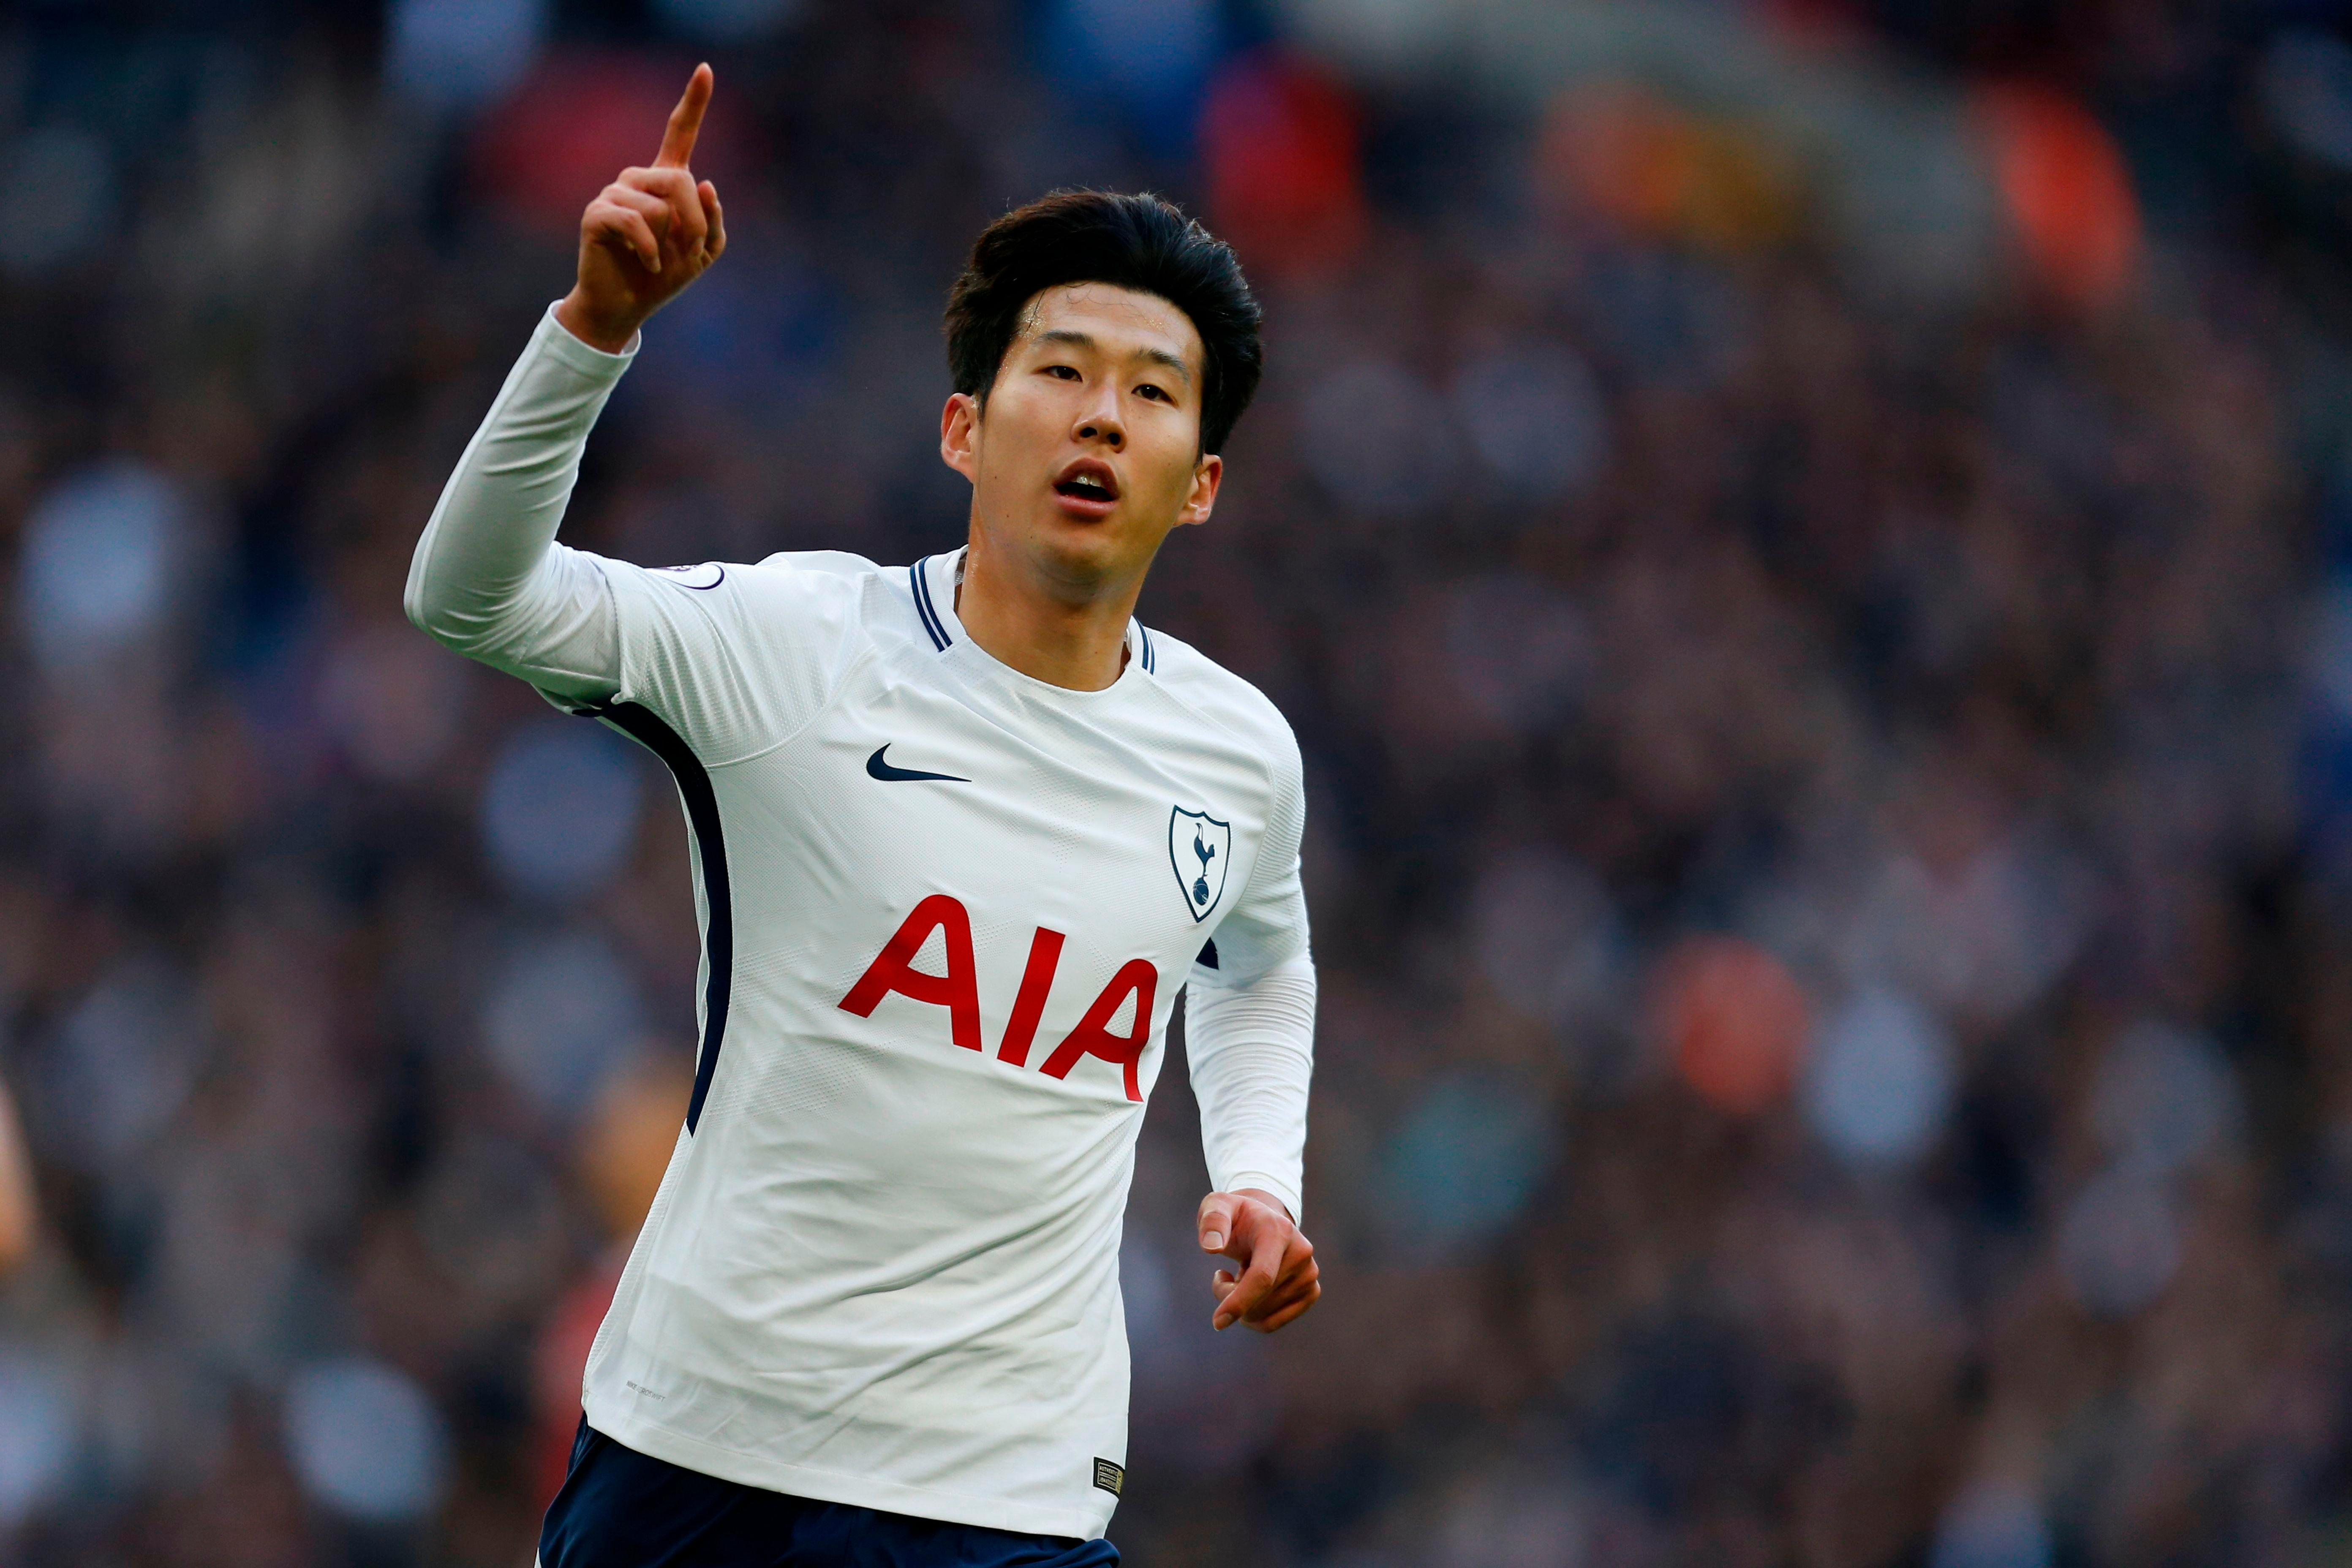 Son Heung-min proved the 'Harry Kane Team' has another element to it